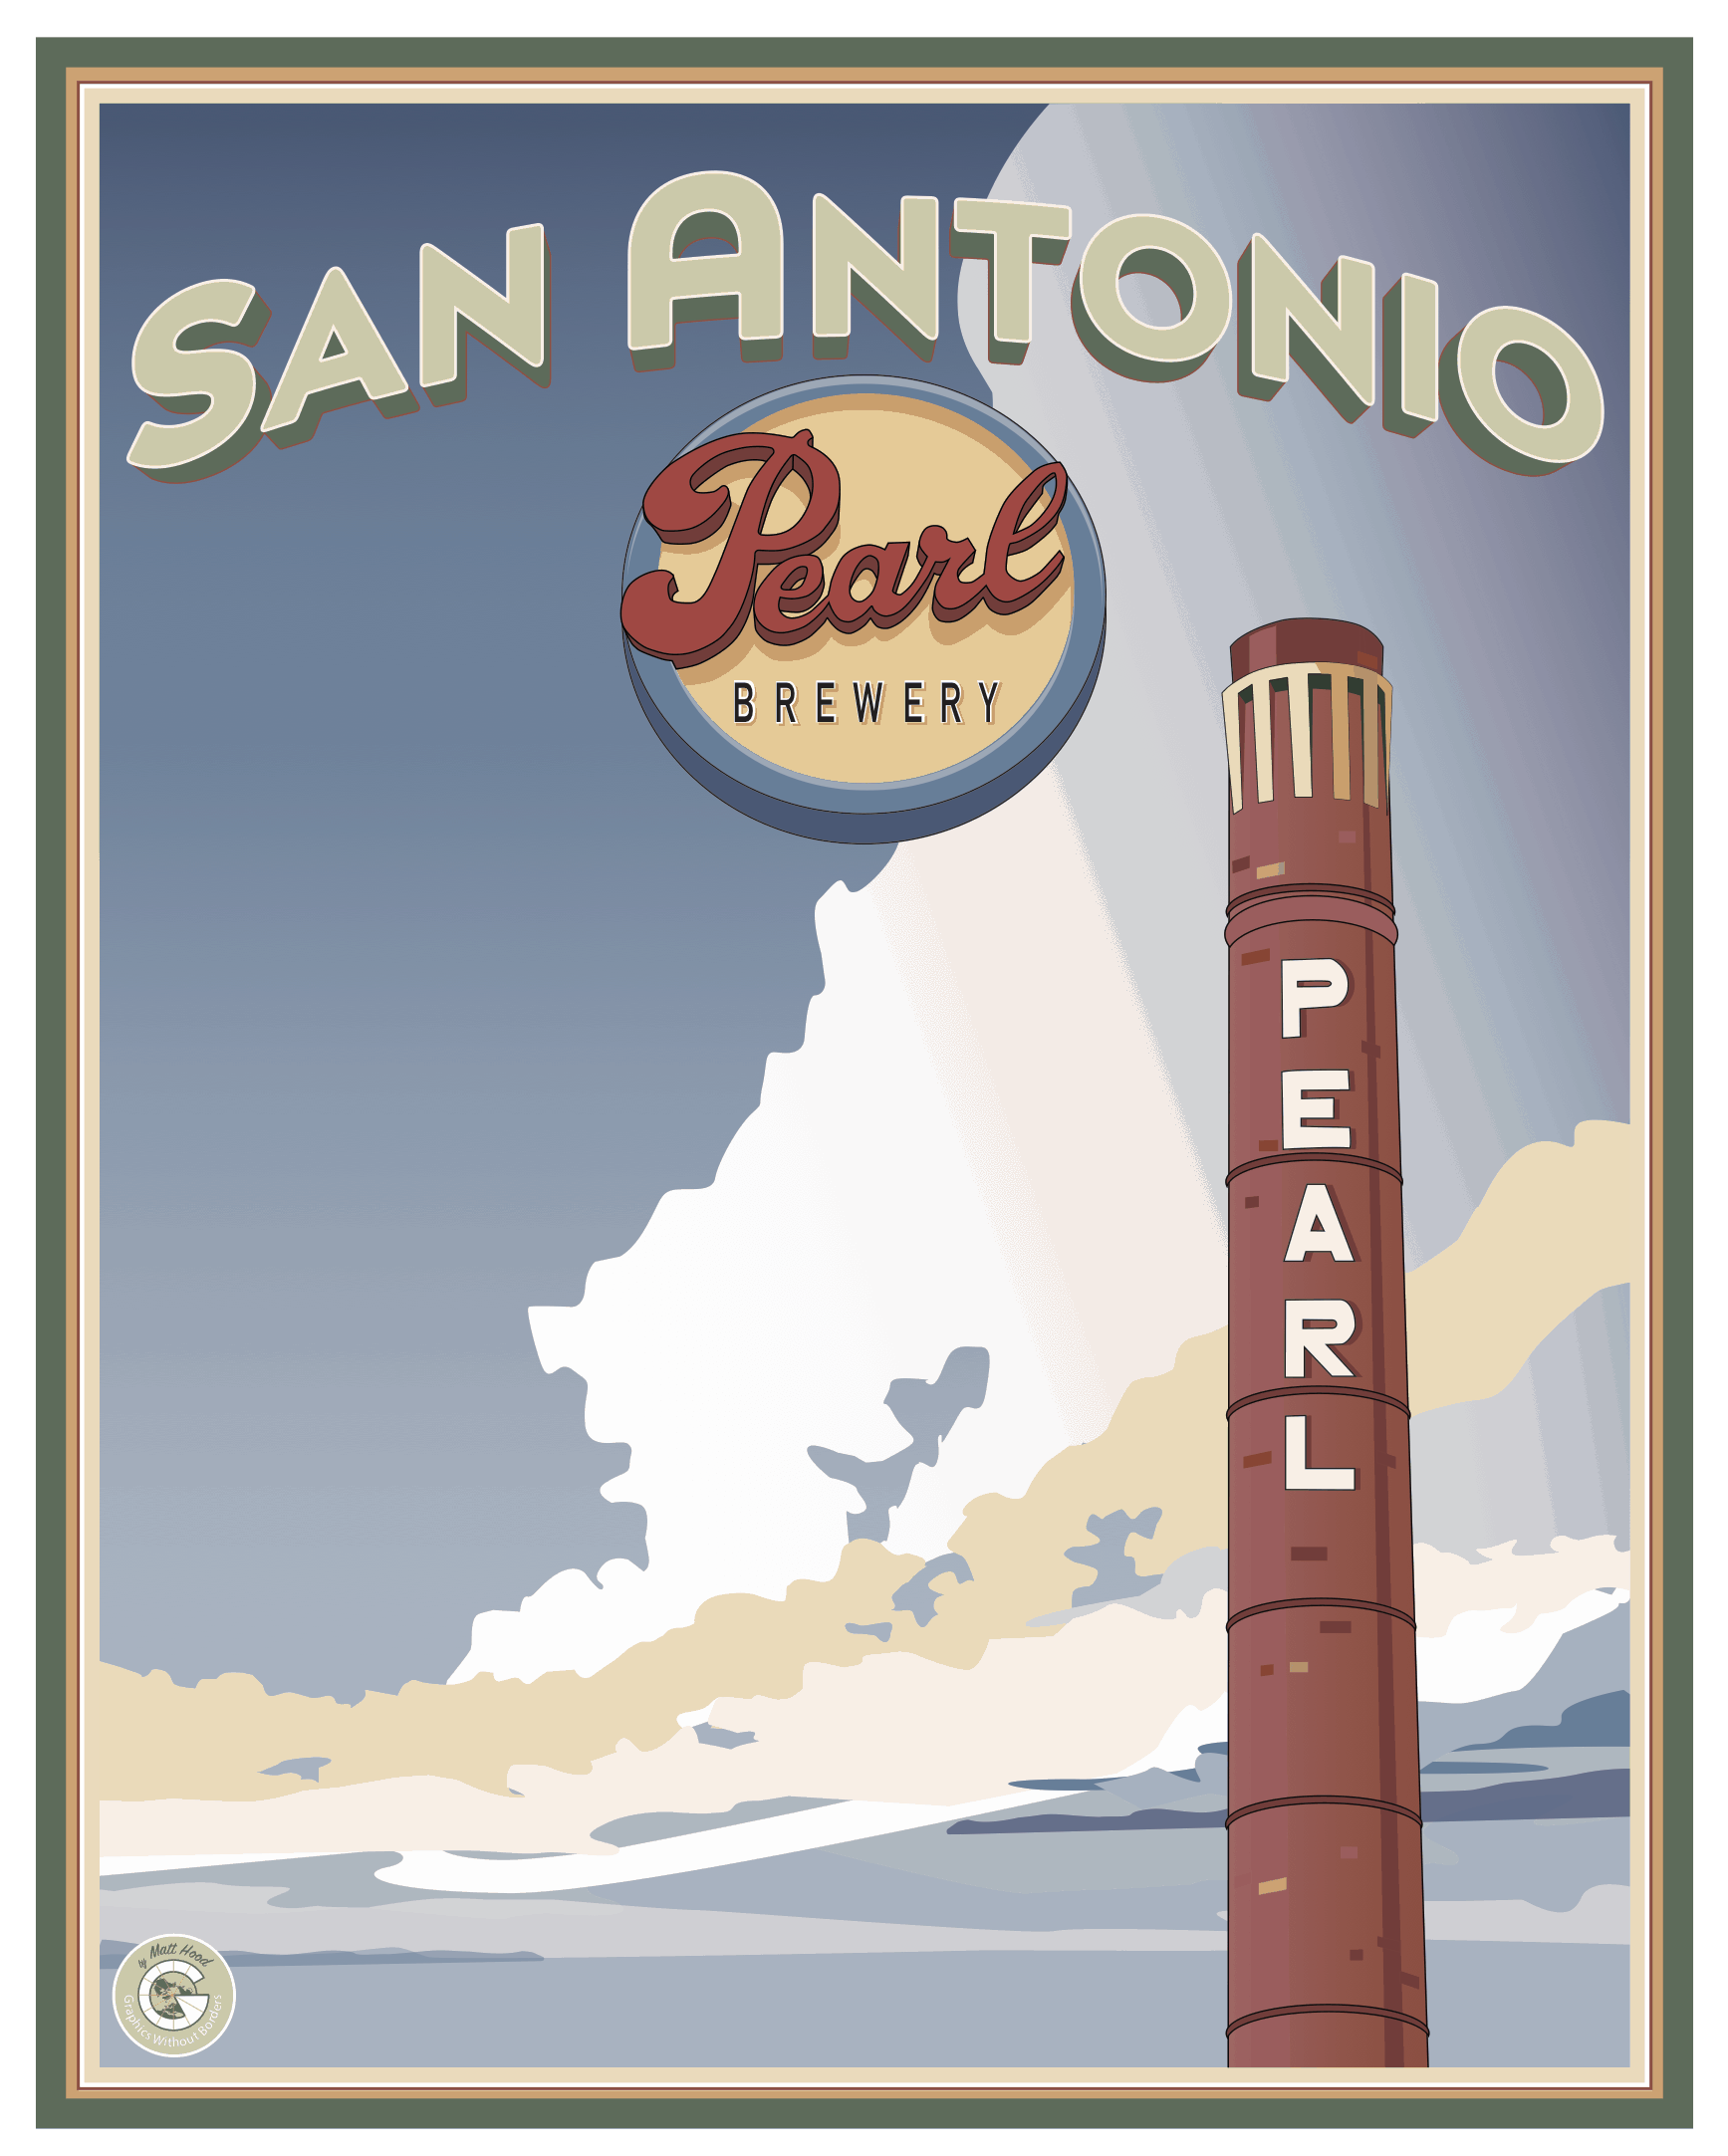 Vintage-style travel poster for San Antonio's Pearl Brewery